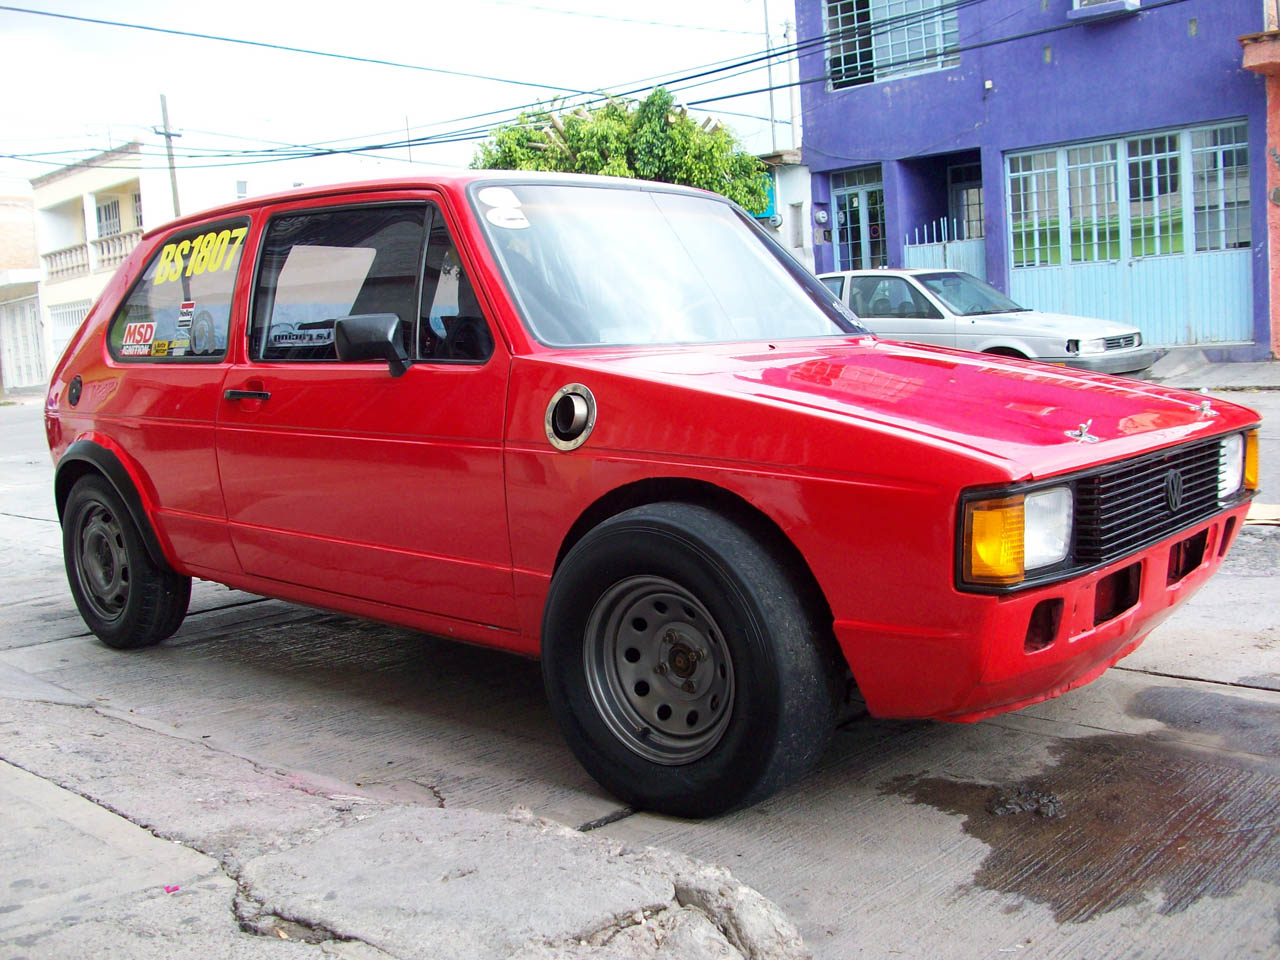 1984 Red Volkswagen Rabbit DURON MOTORSPORT picture, mods, upgrades